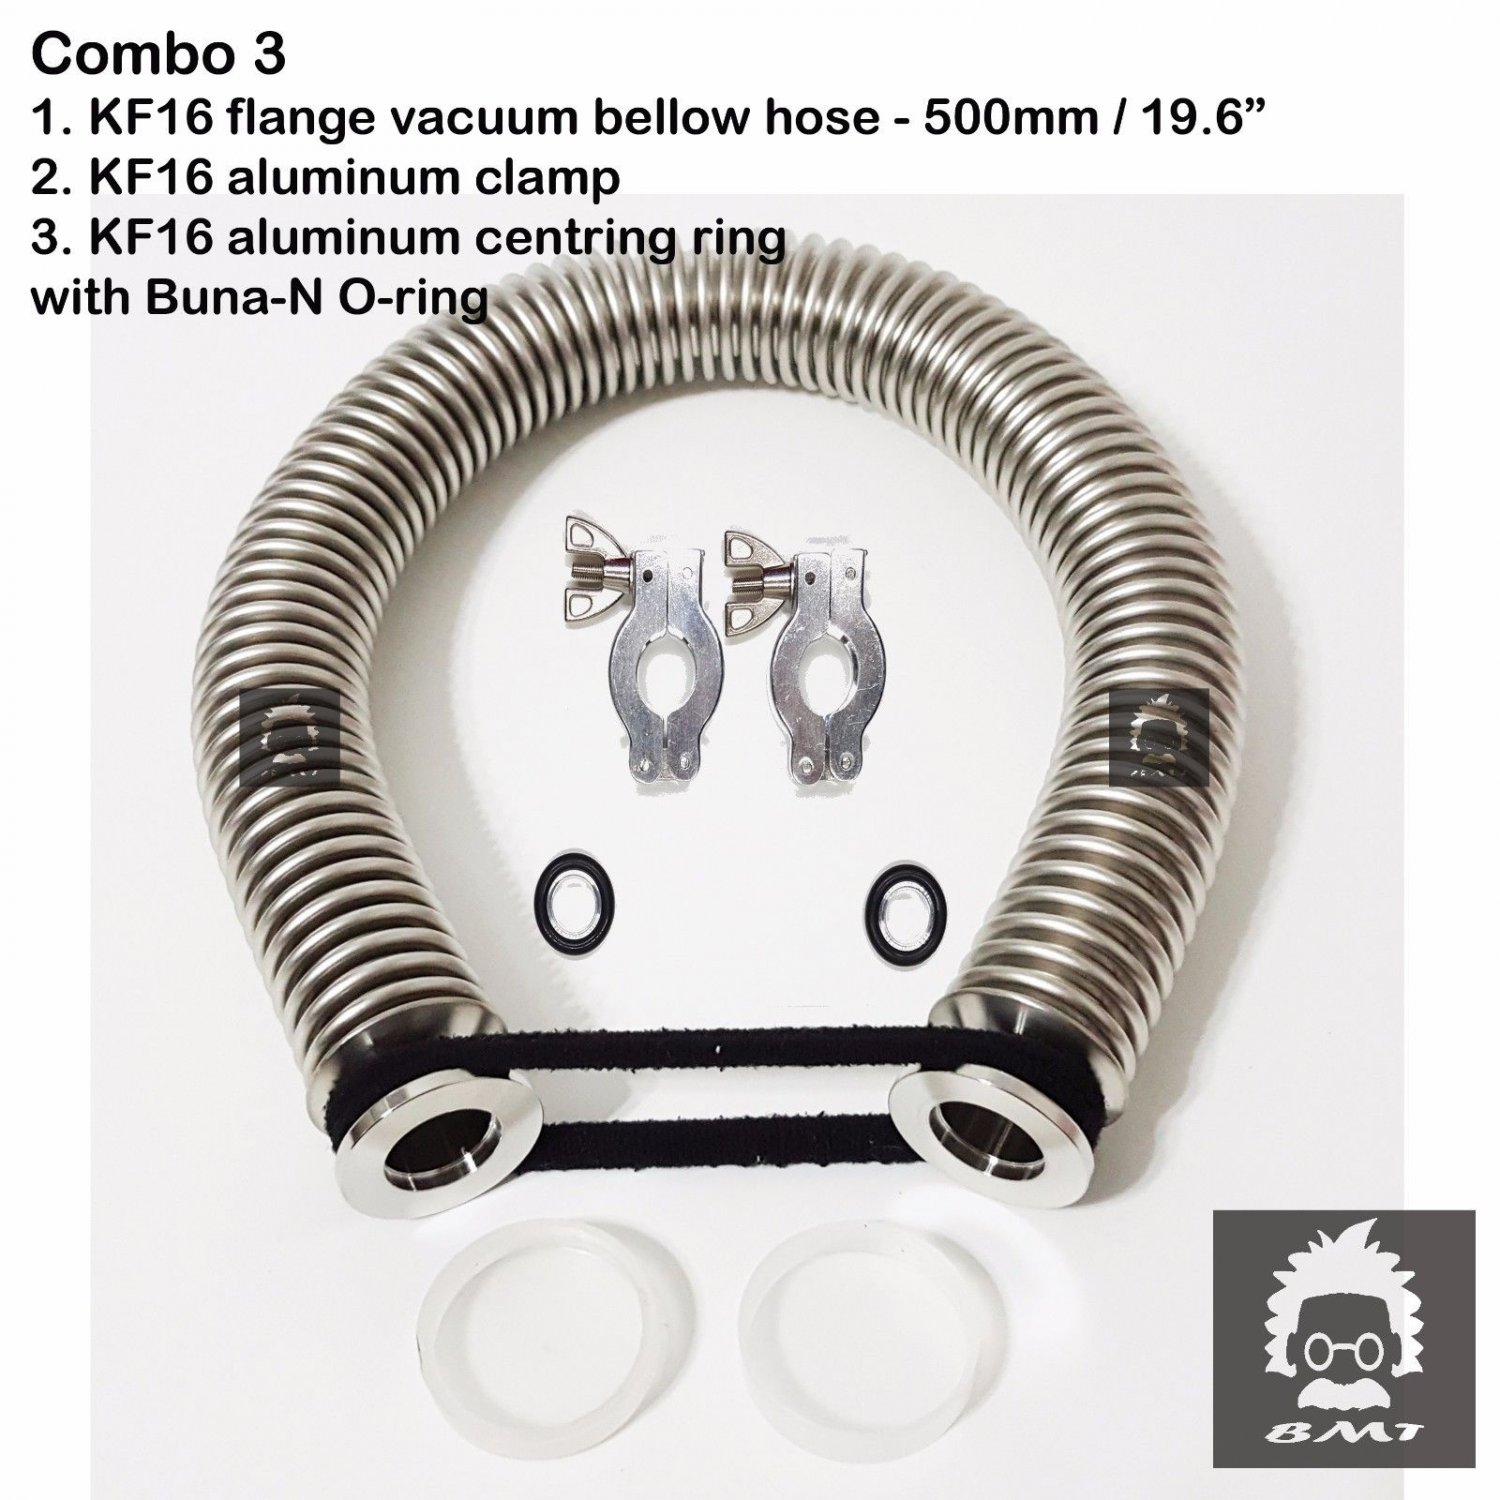 "KF16 flange vacuum bellow hose 500mm 19.6"" 2 sets Al clampers & O-ring = Buna-N"